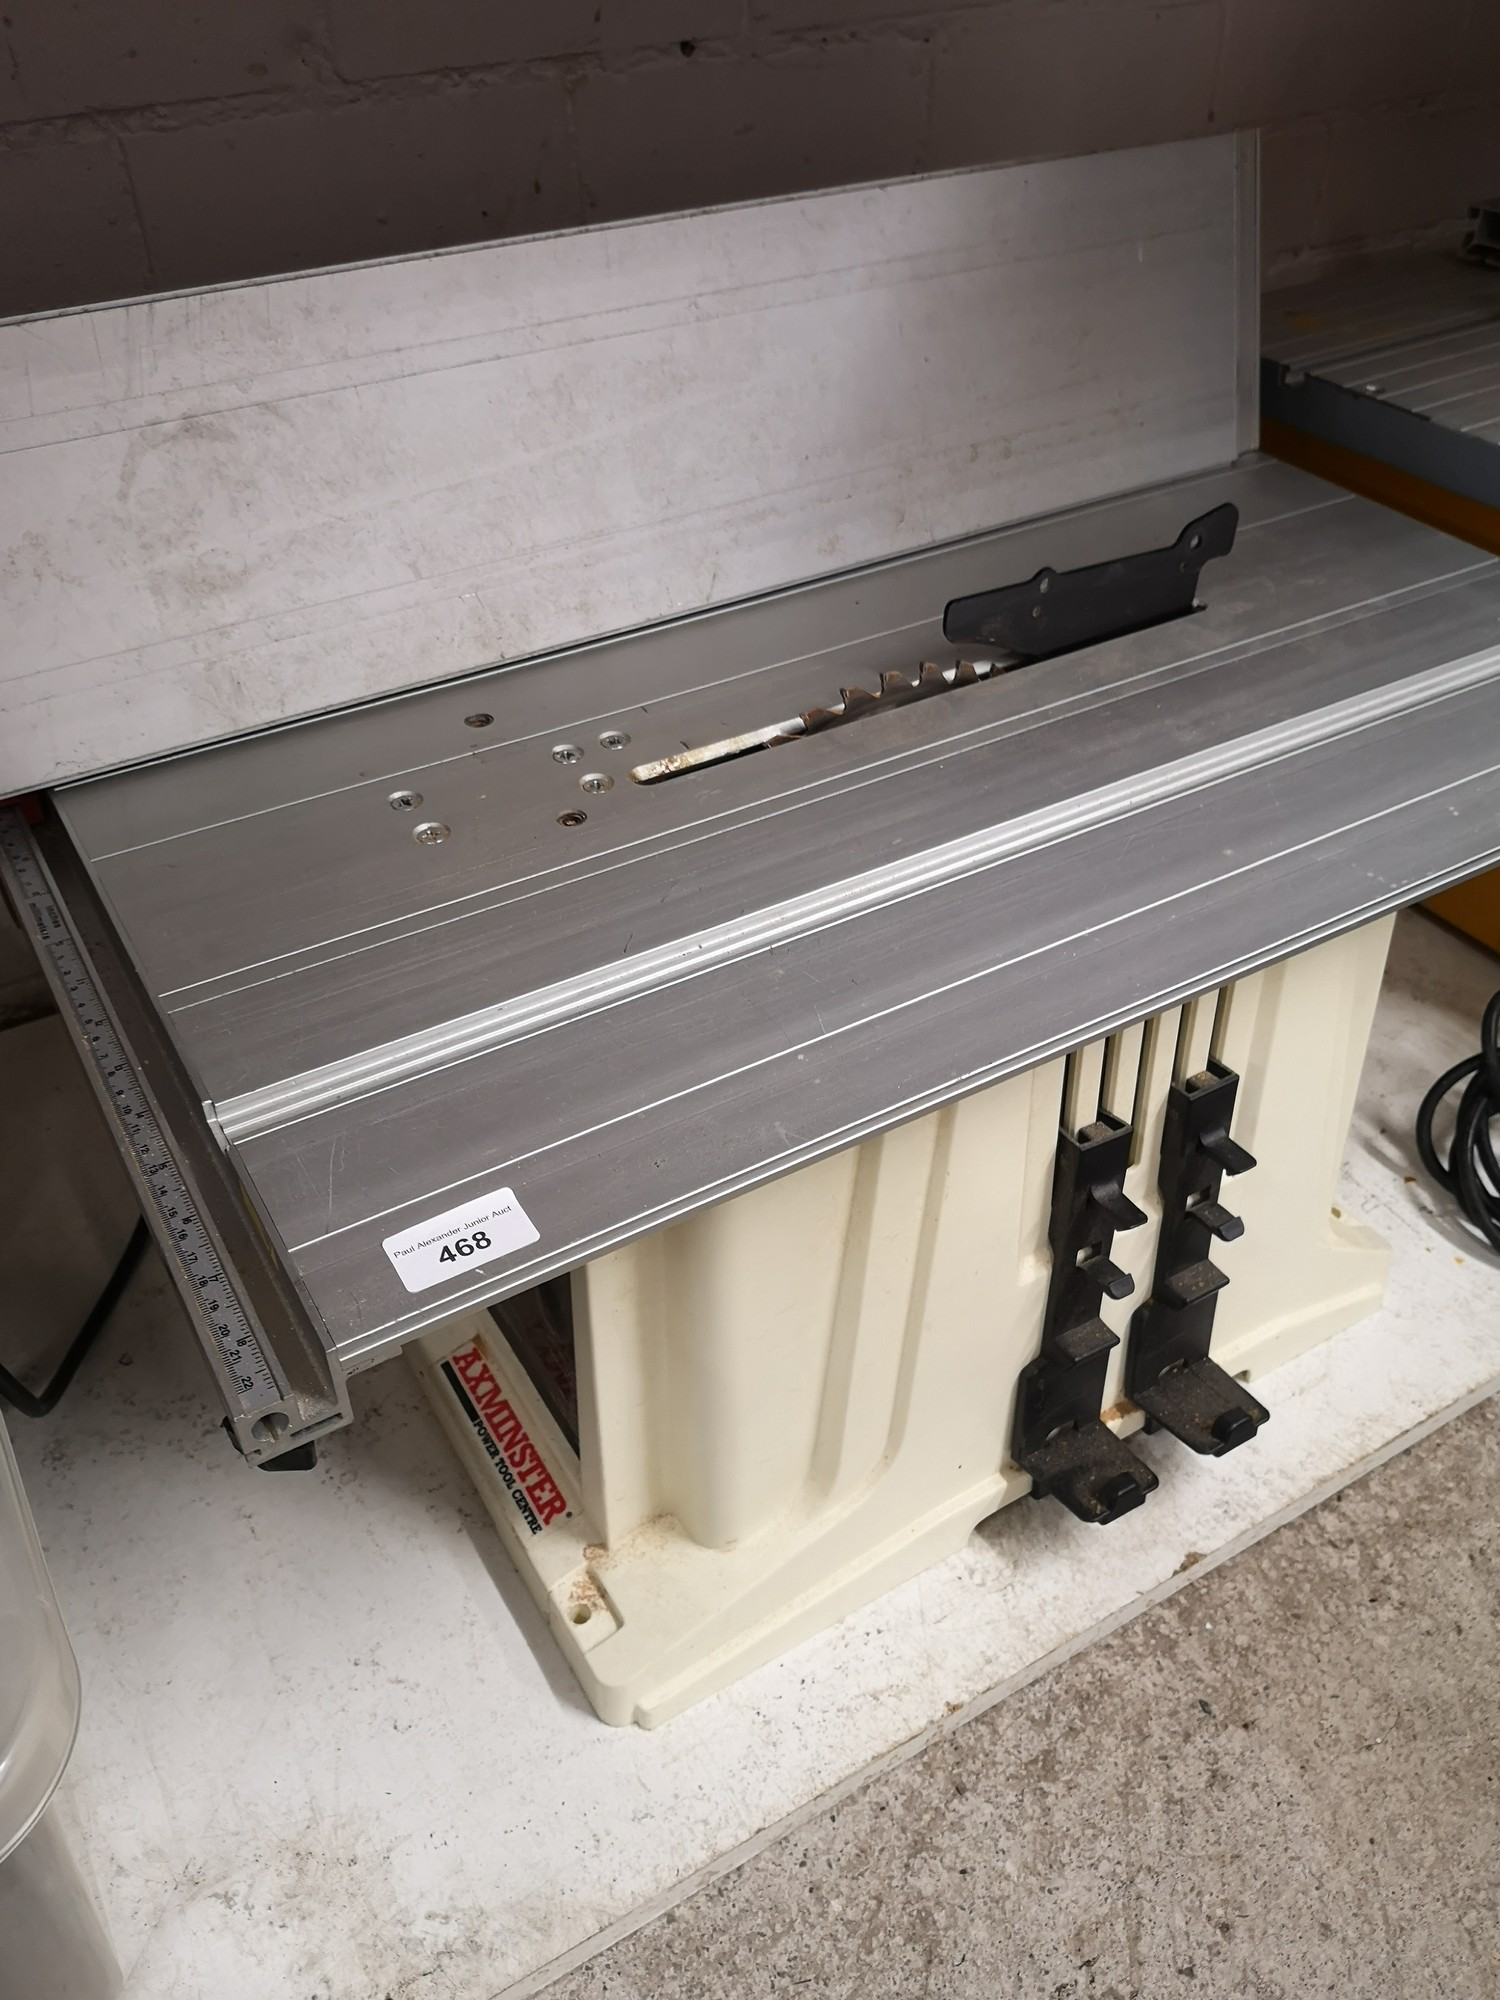 Axminster heavy duty table saw. Working order.